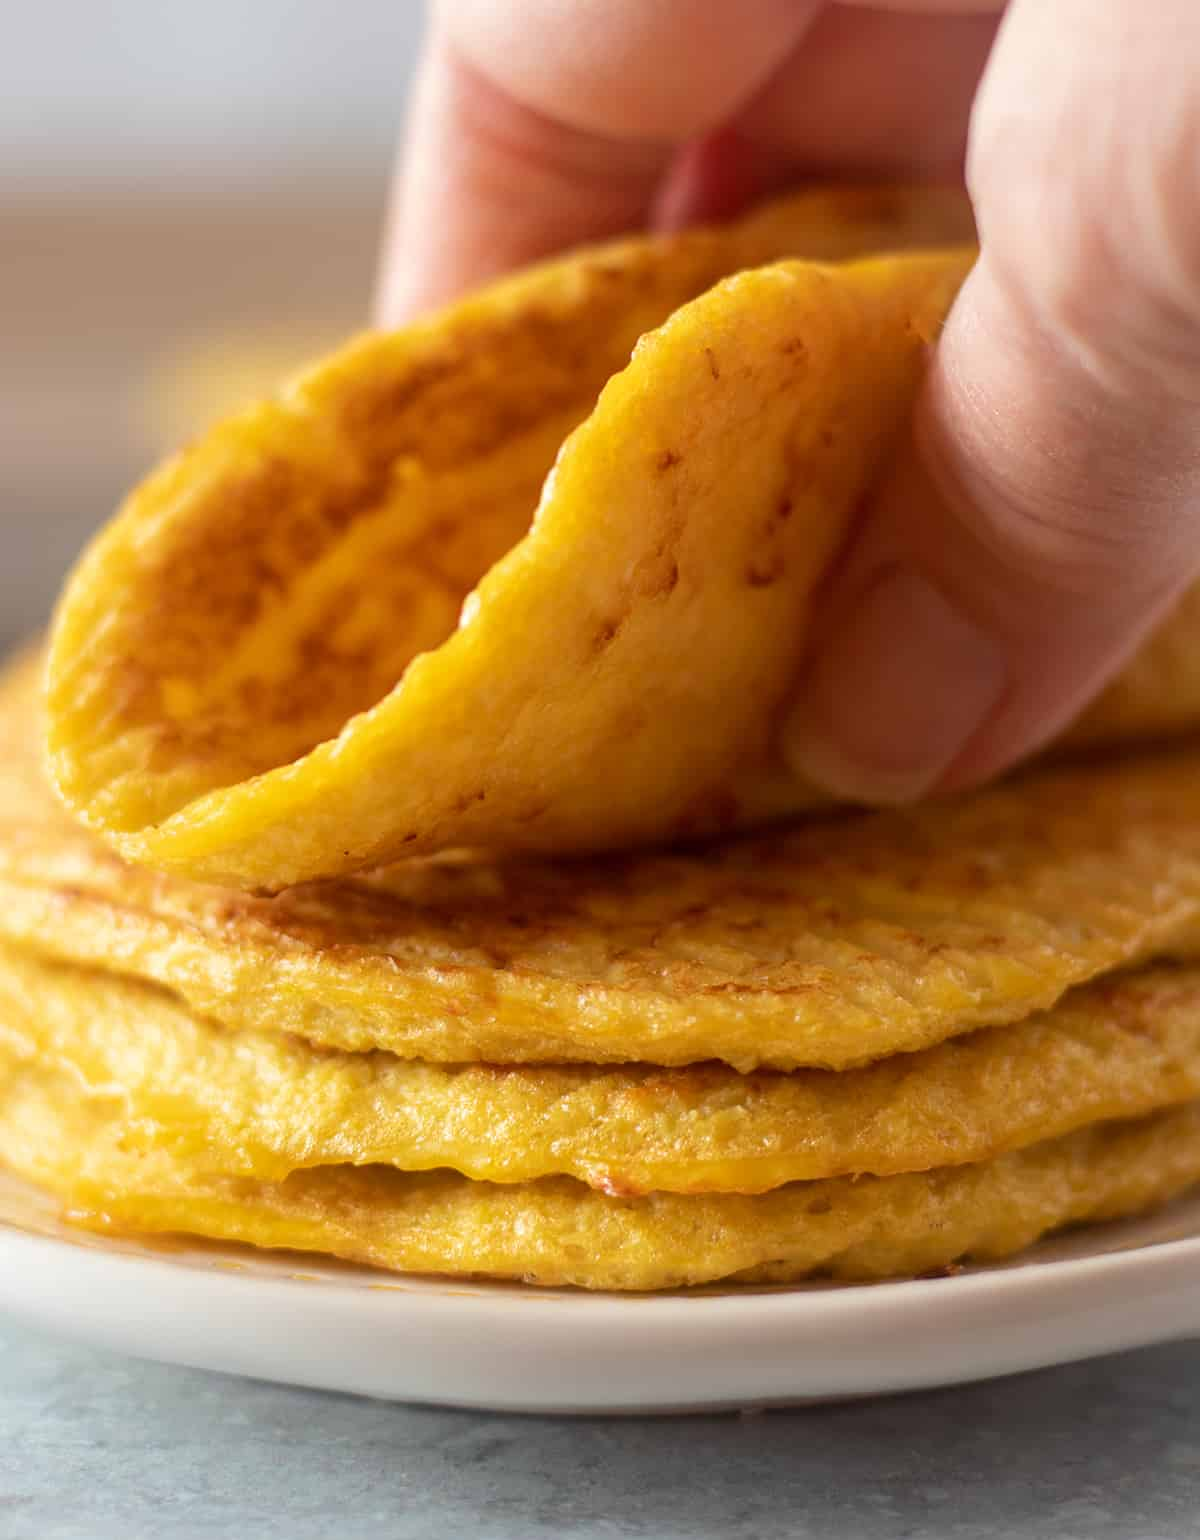 Cauliflower tortillas stacked on a plate with a hand grabbing and bending one.